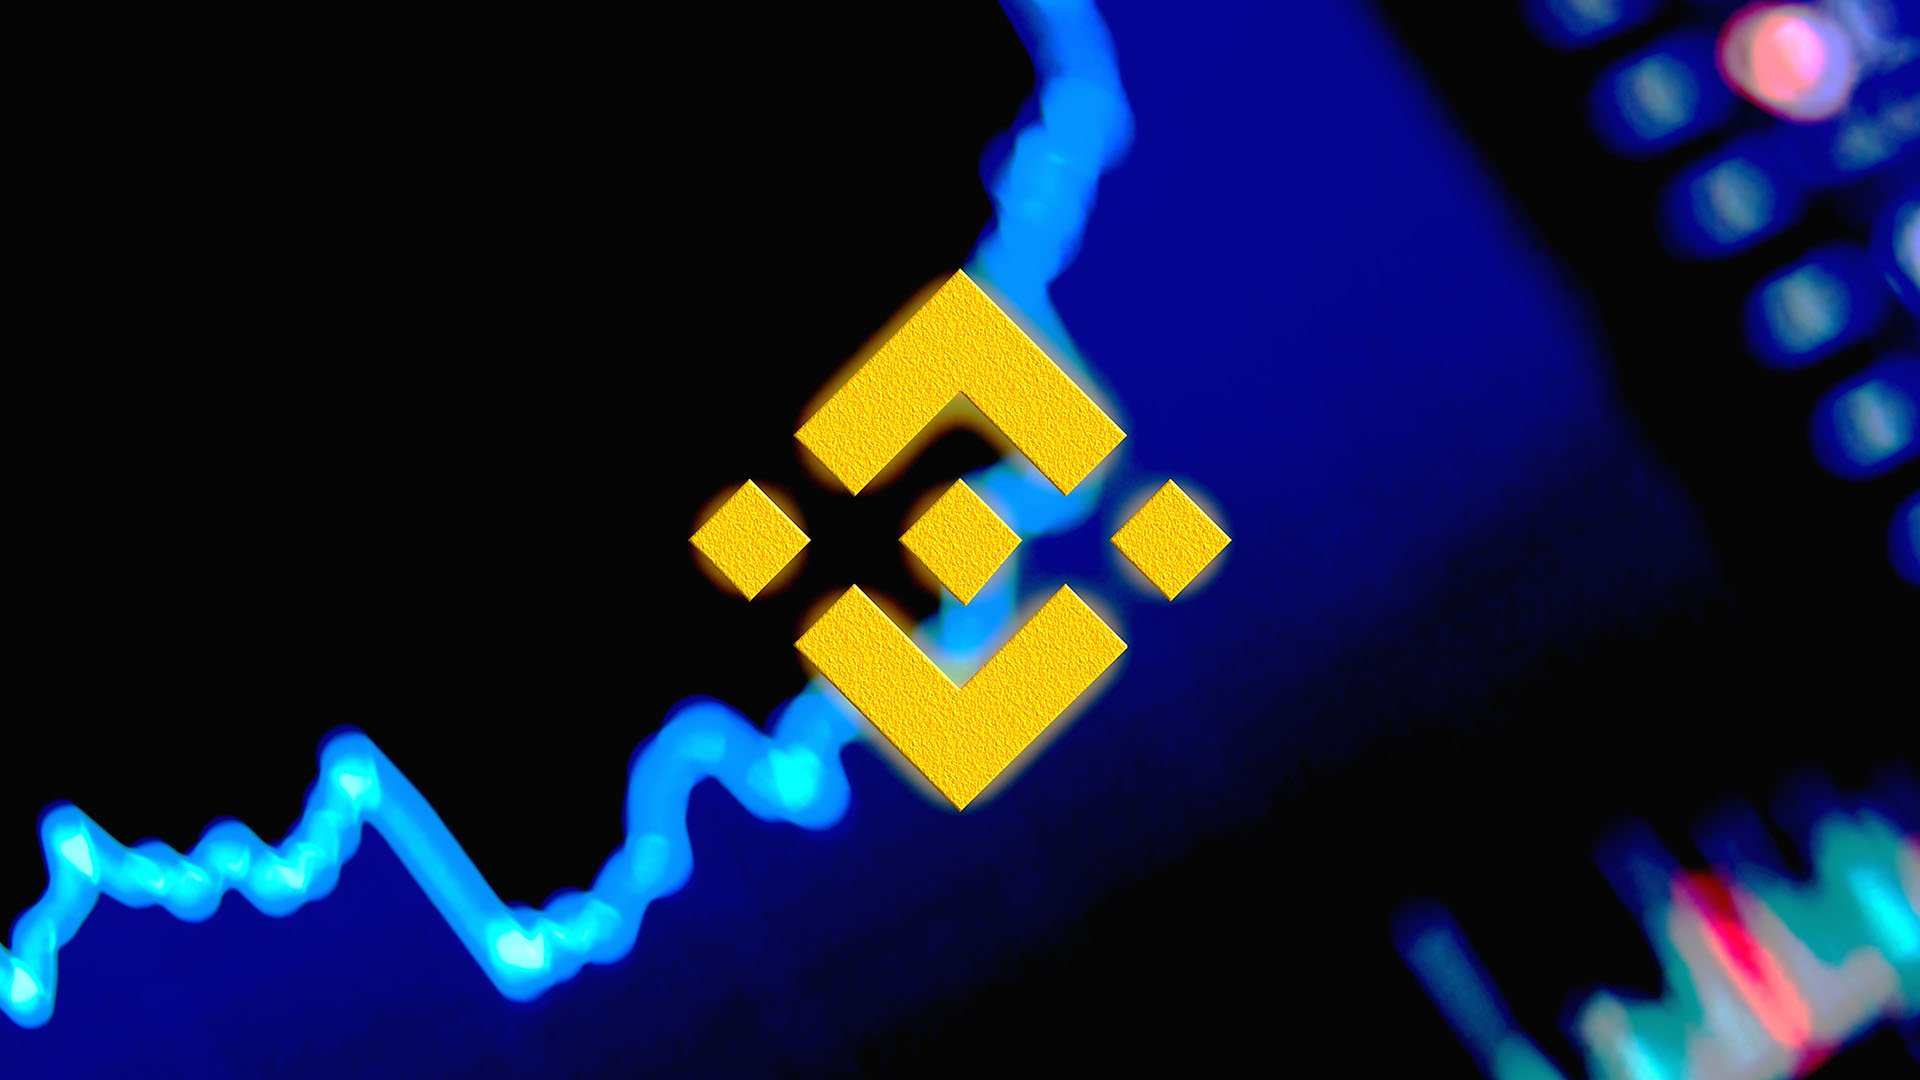 Binance shrinks non-KYC withdrawal limits as crypto exchanges face regulatory pressure